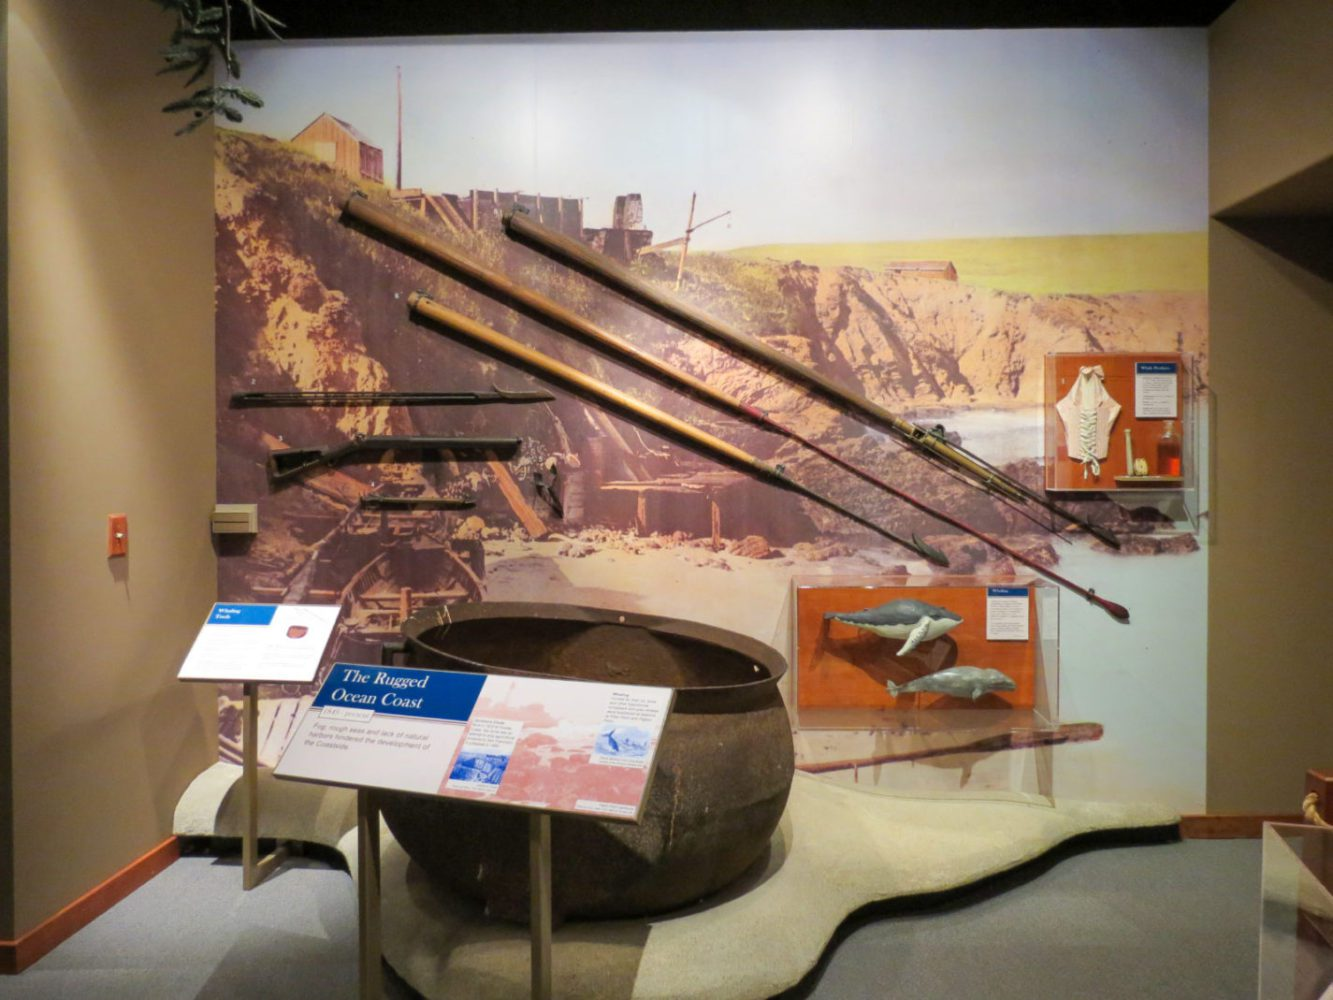 Exhibit display of whaling tools at Natures Bounty at the San Mateo County History Museum